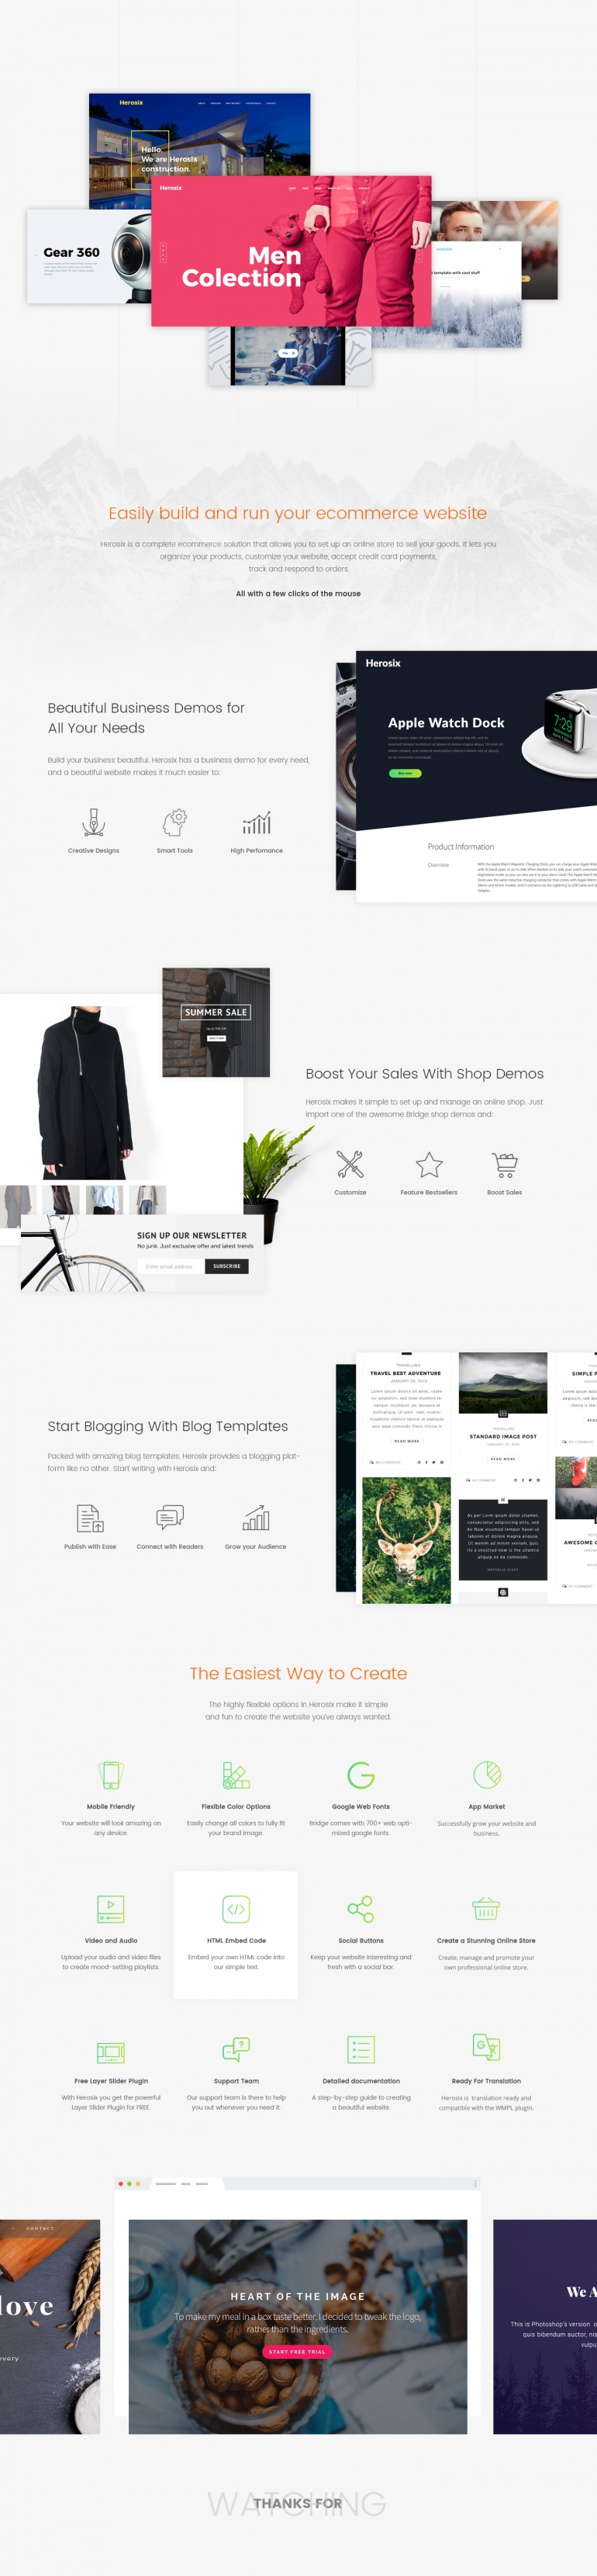 Easily build and run your Ecommerce website